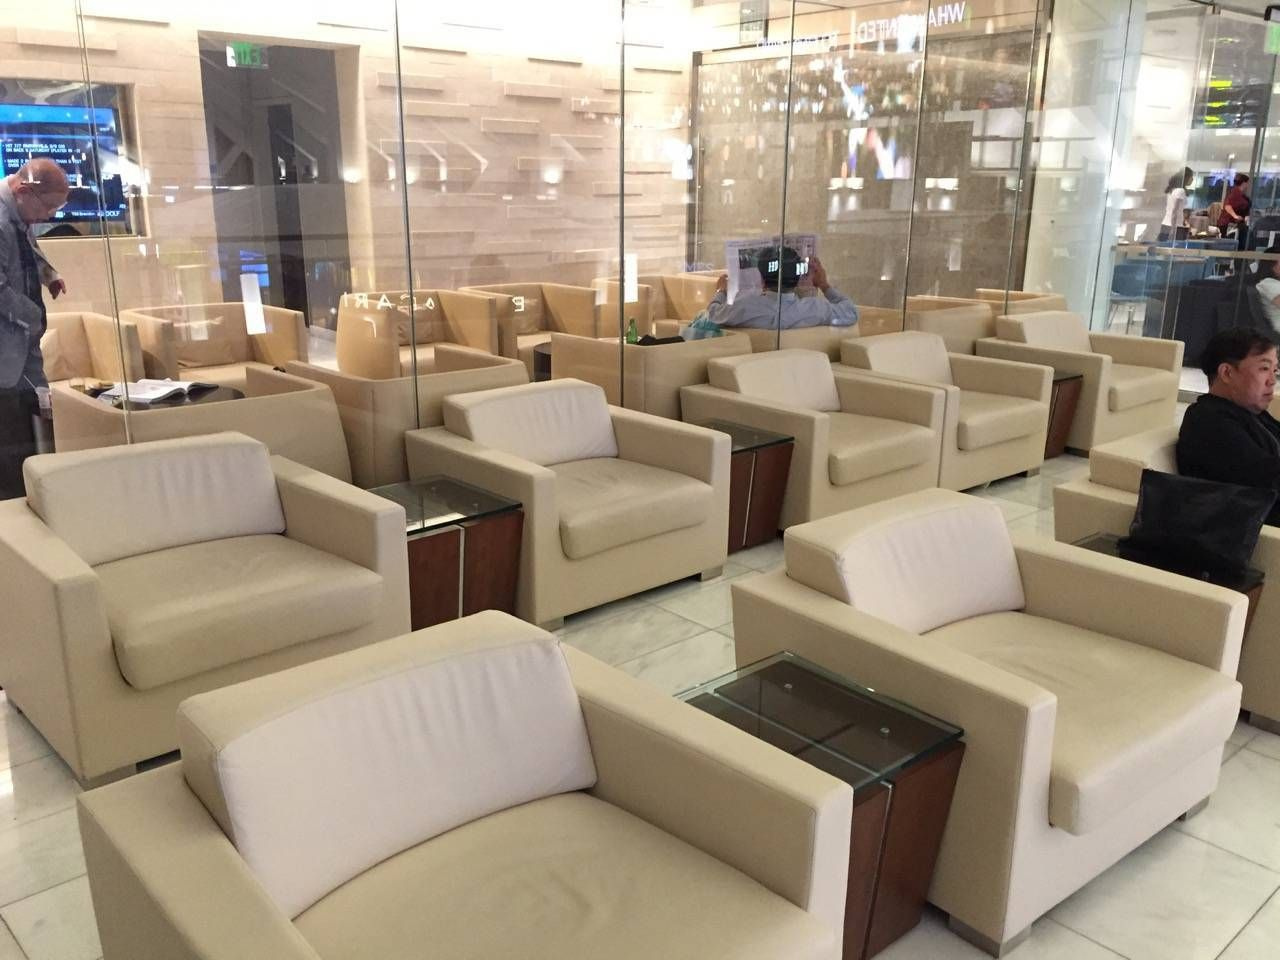 Korean Air First Class Lounge LAX -028